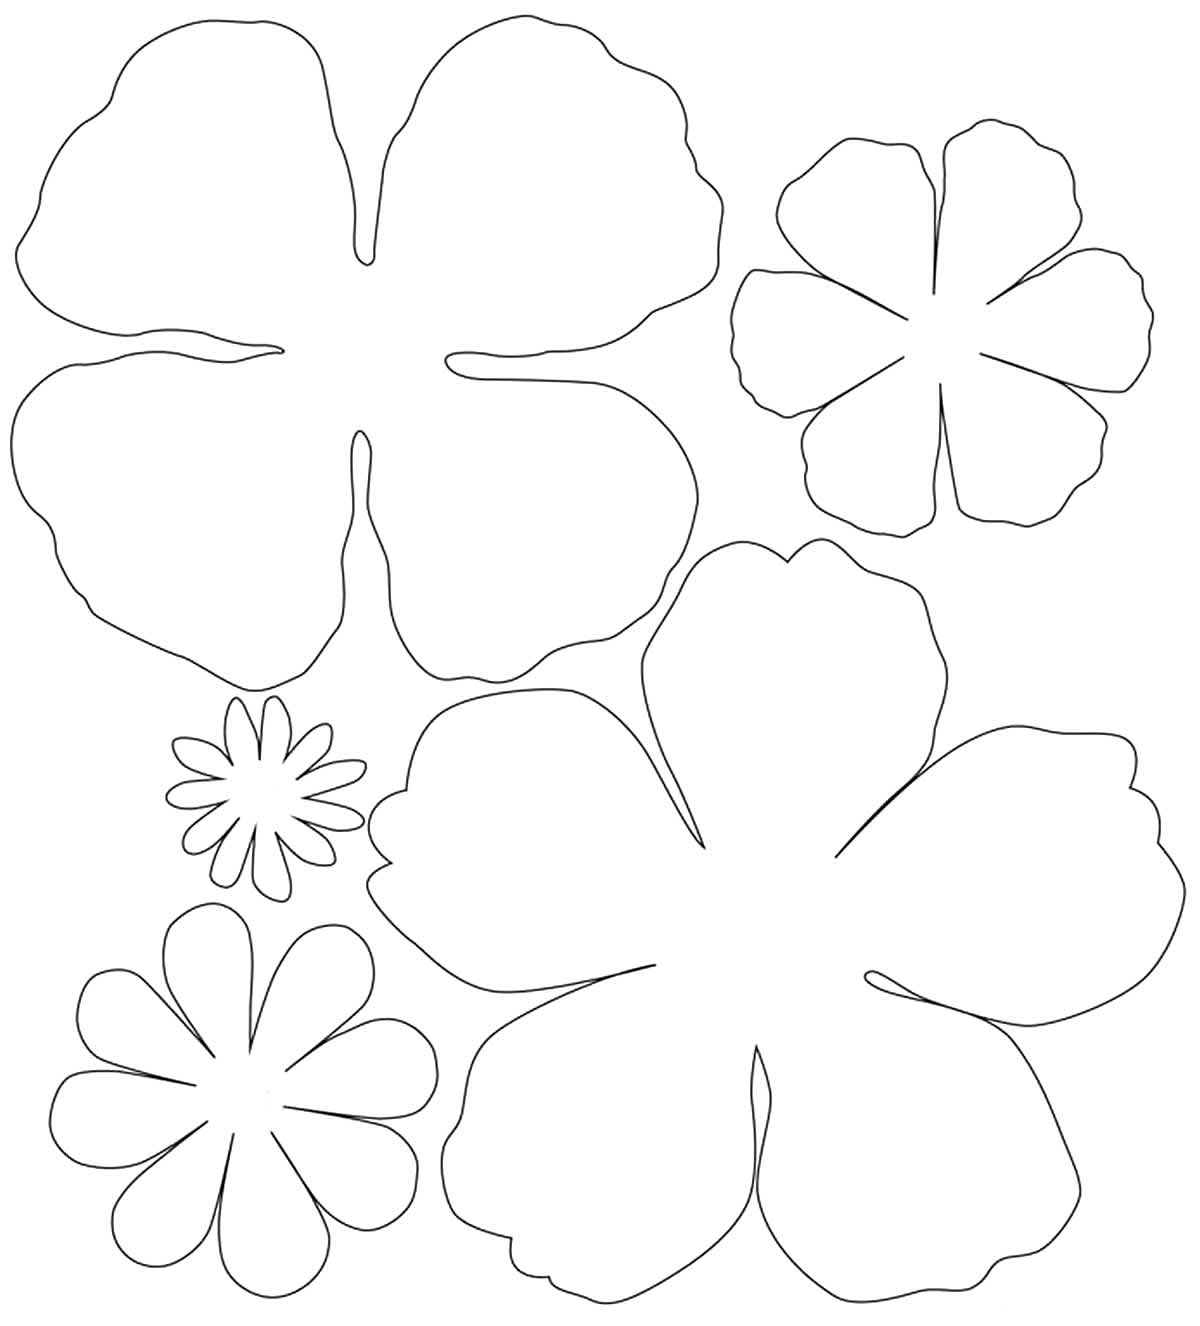 Petal molds for making paper flowers